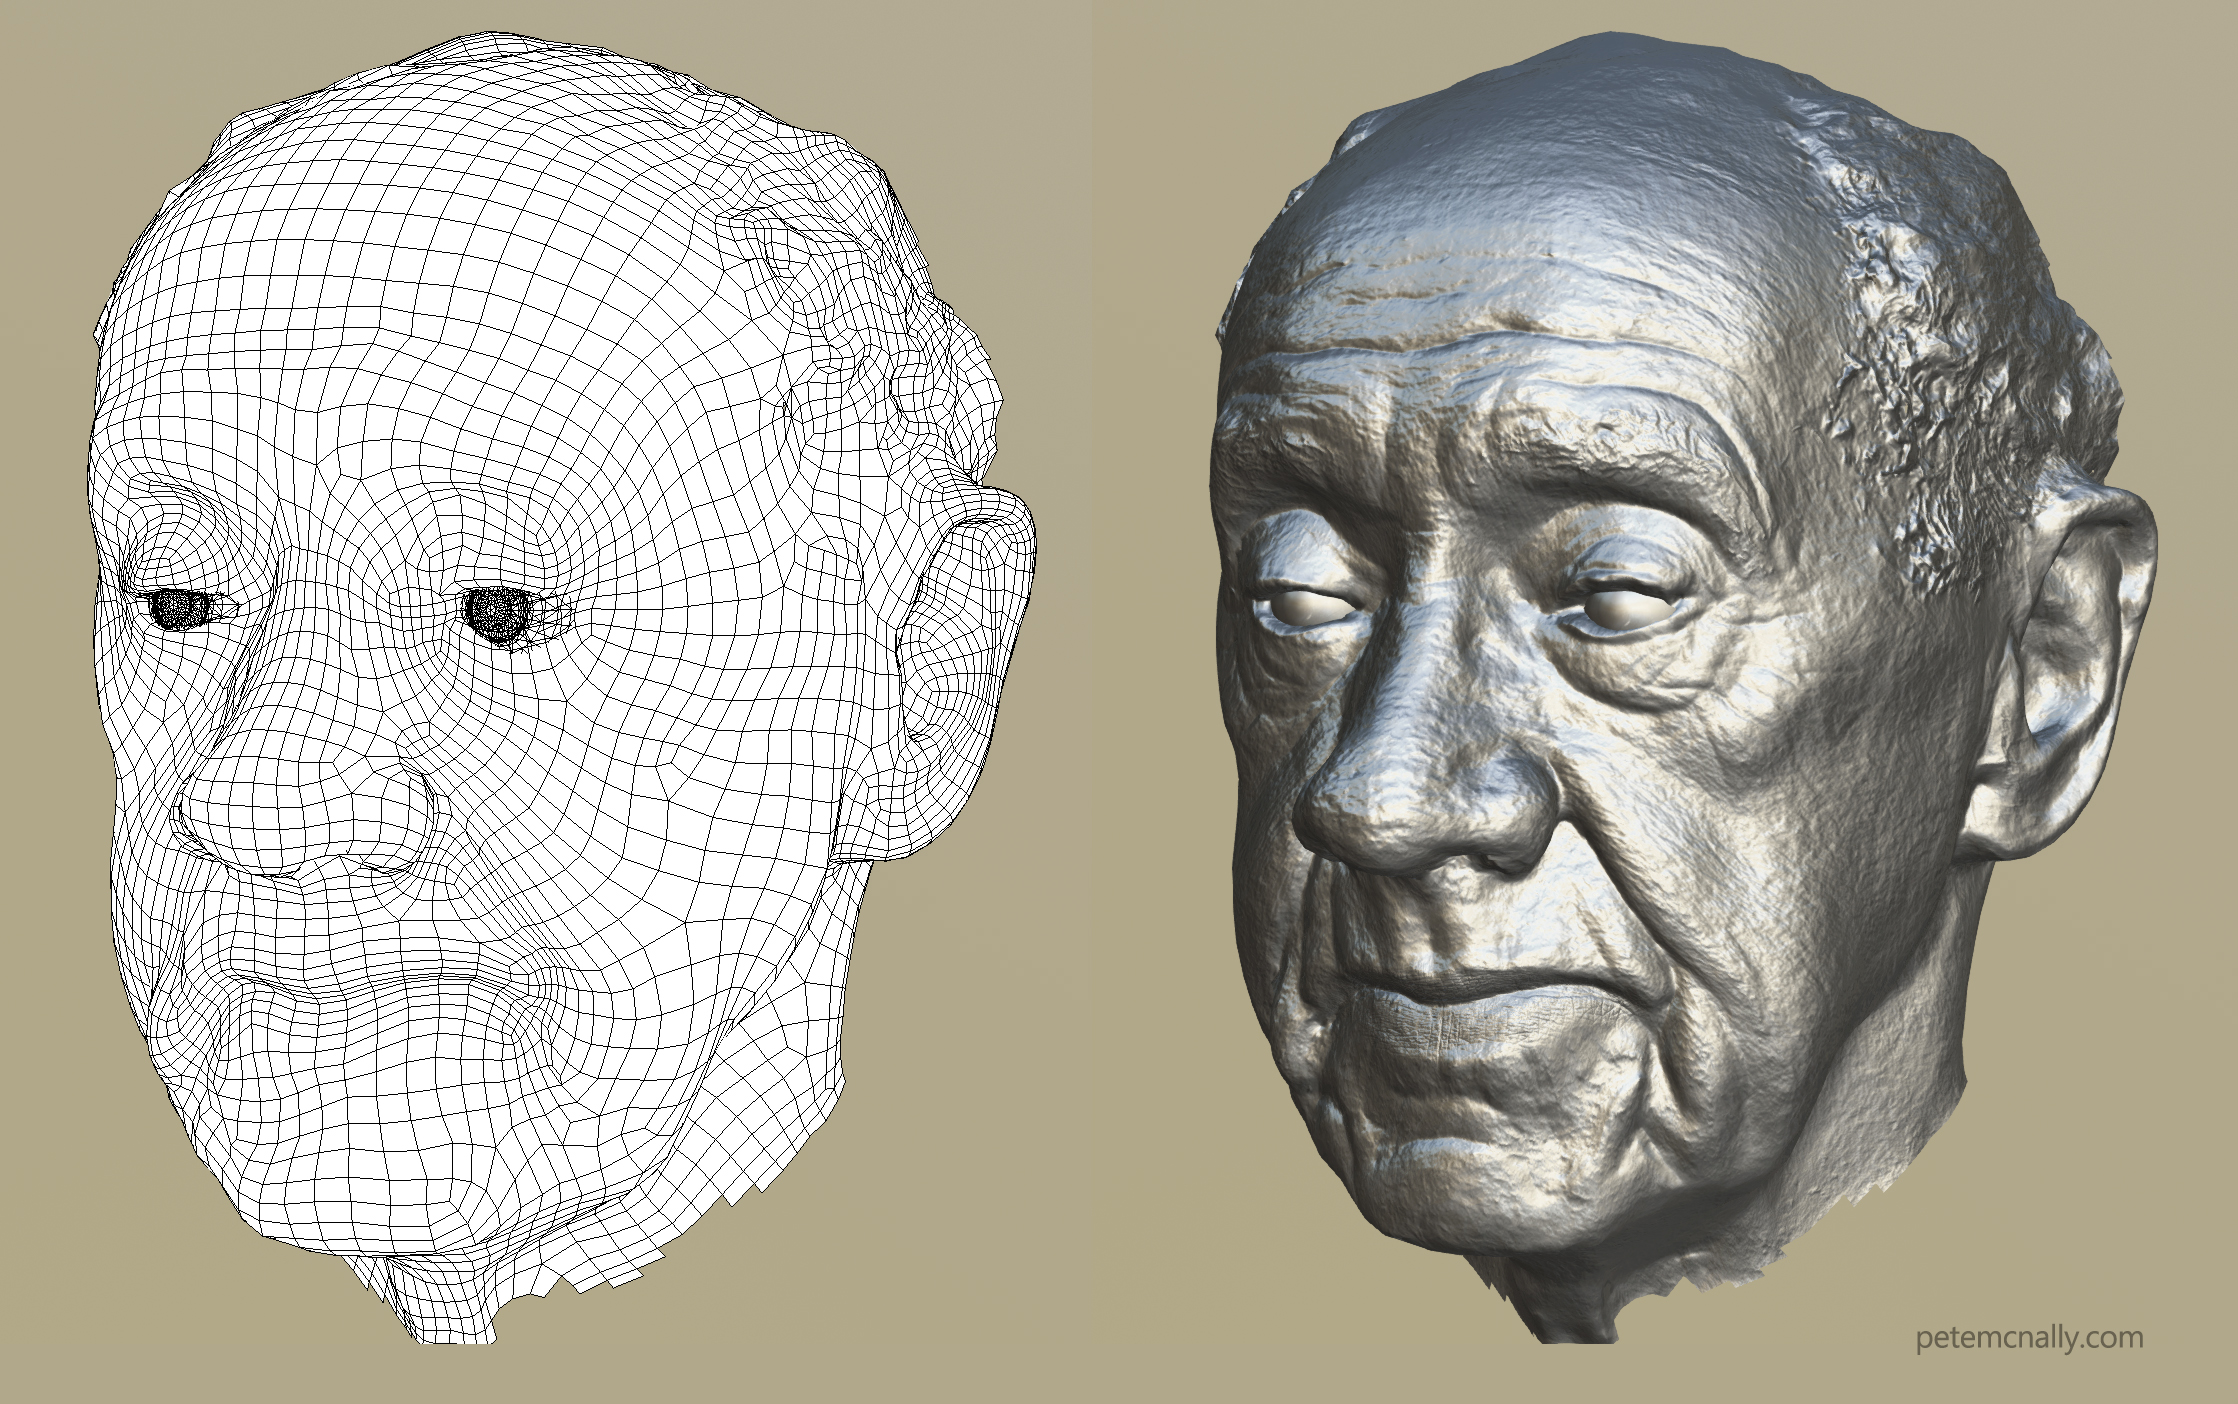 photogrammetry | Pete Mc Nally's Blog